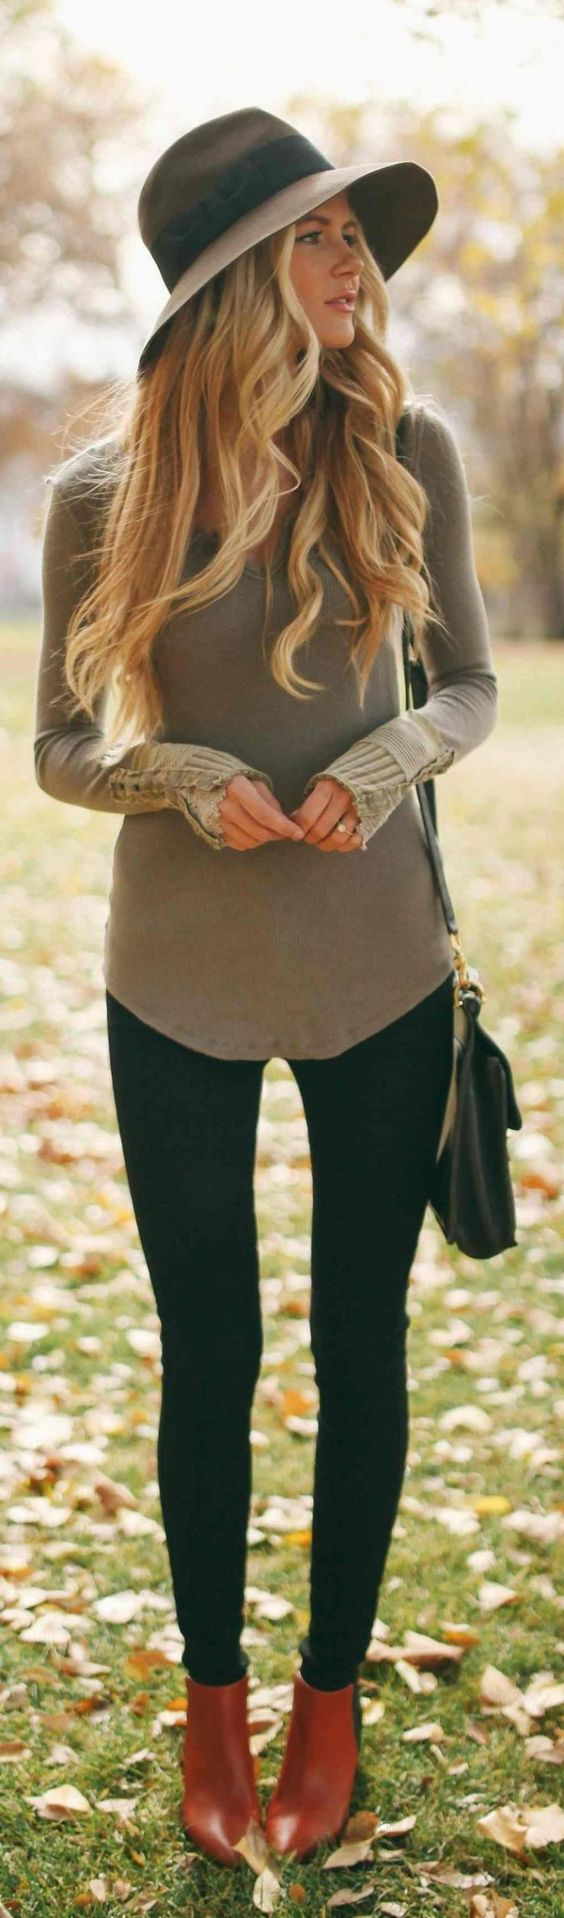 30 Unboring Fall Outfit Ideas For Ladies (12)